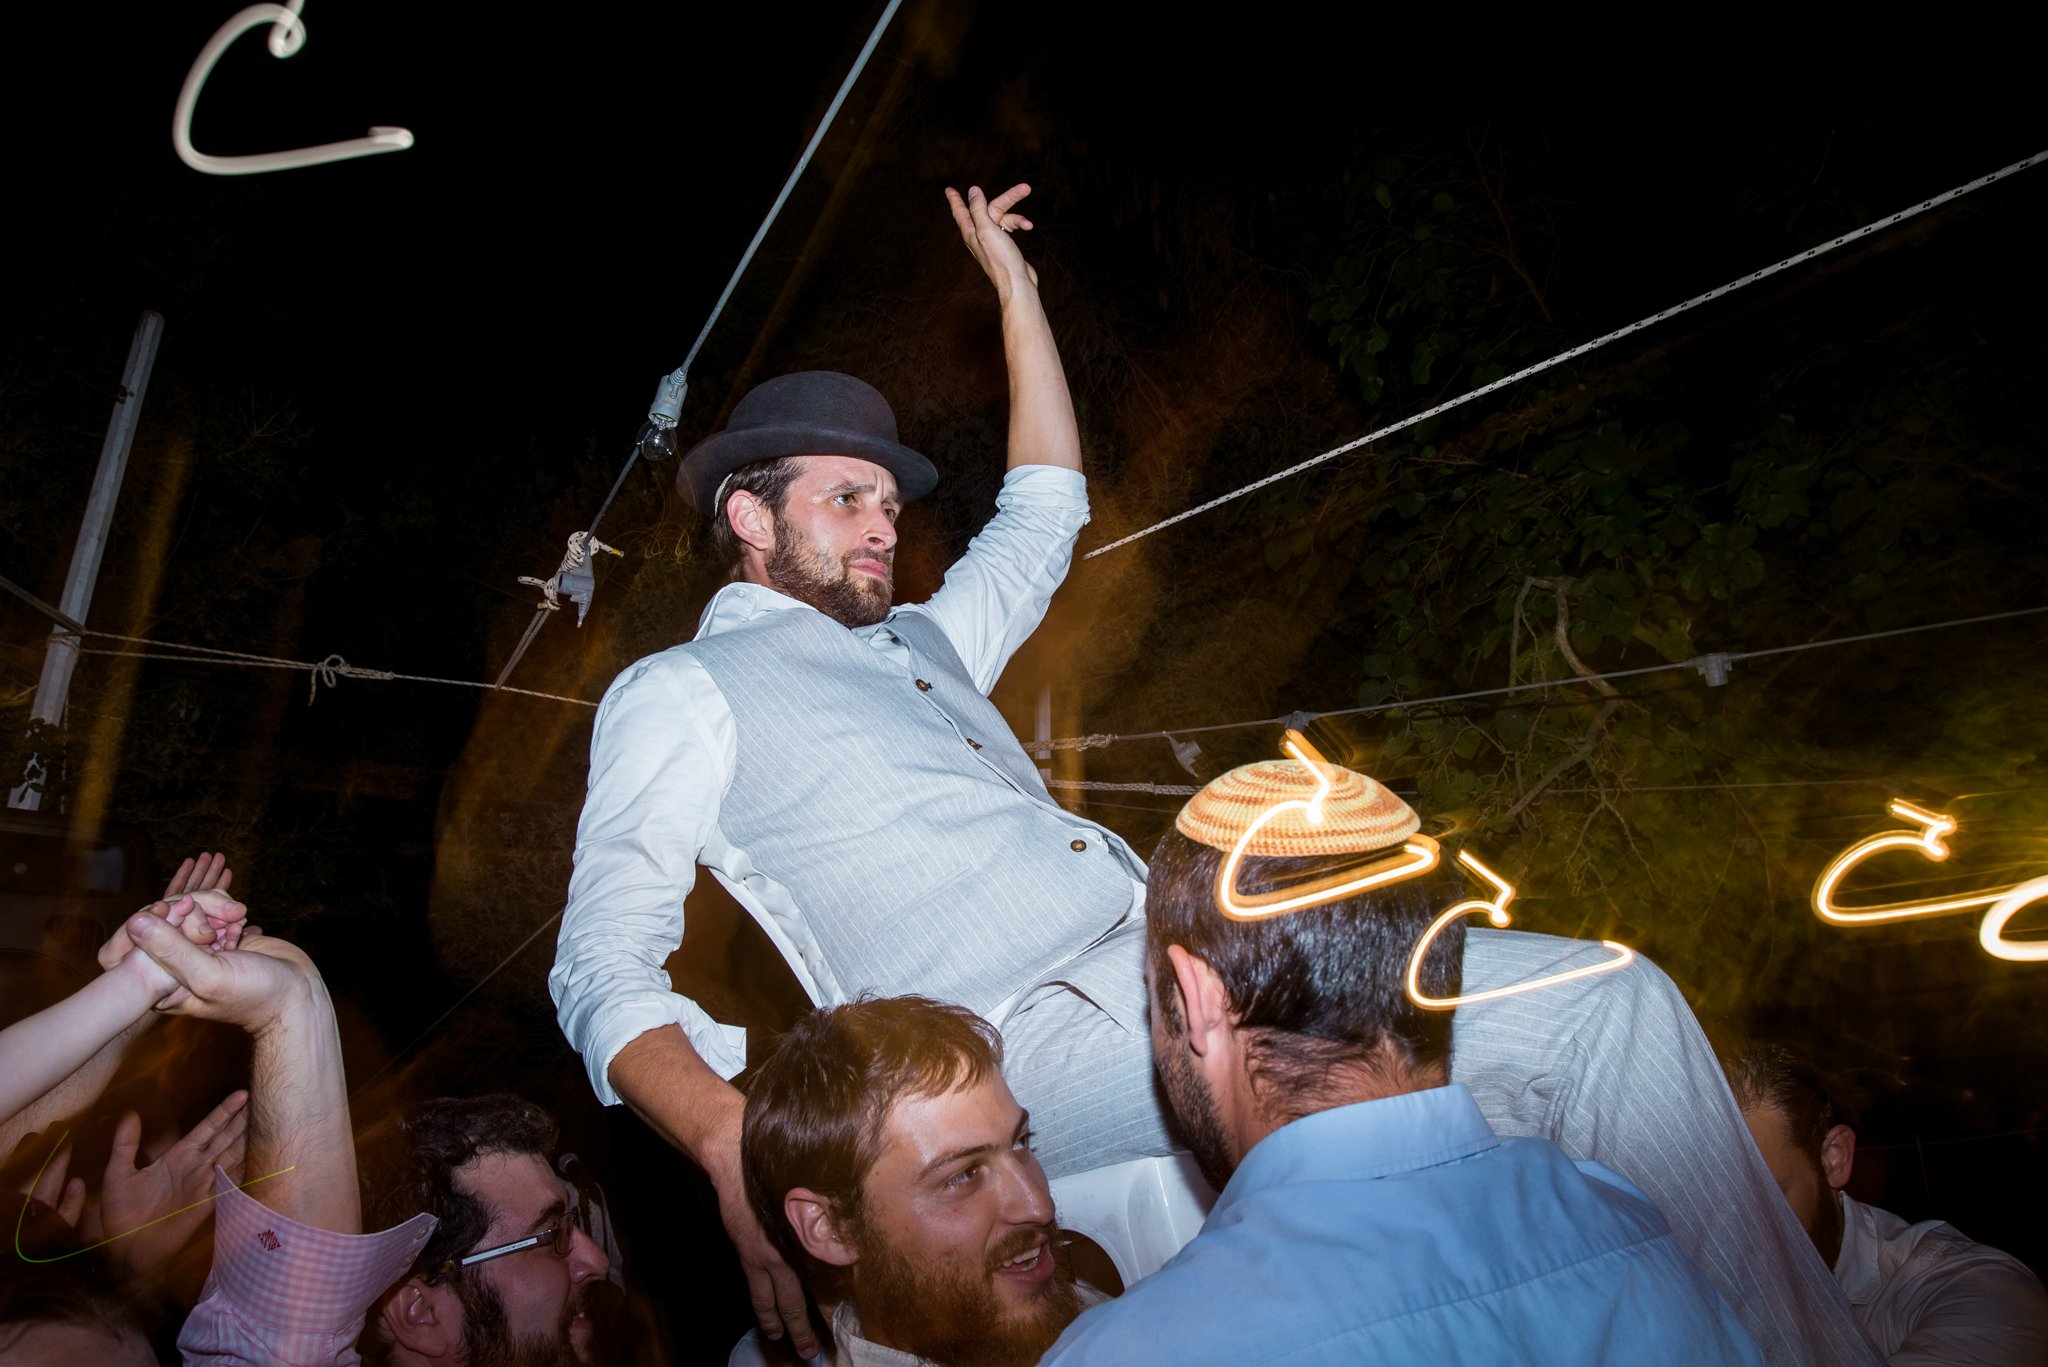 jewish-wedding-binyamina-israel-kate-giryes-photography-214_WEB.jpg